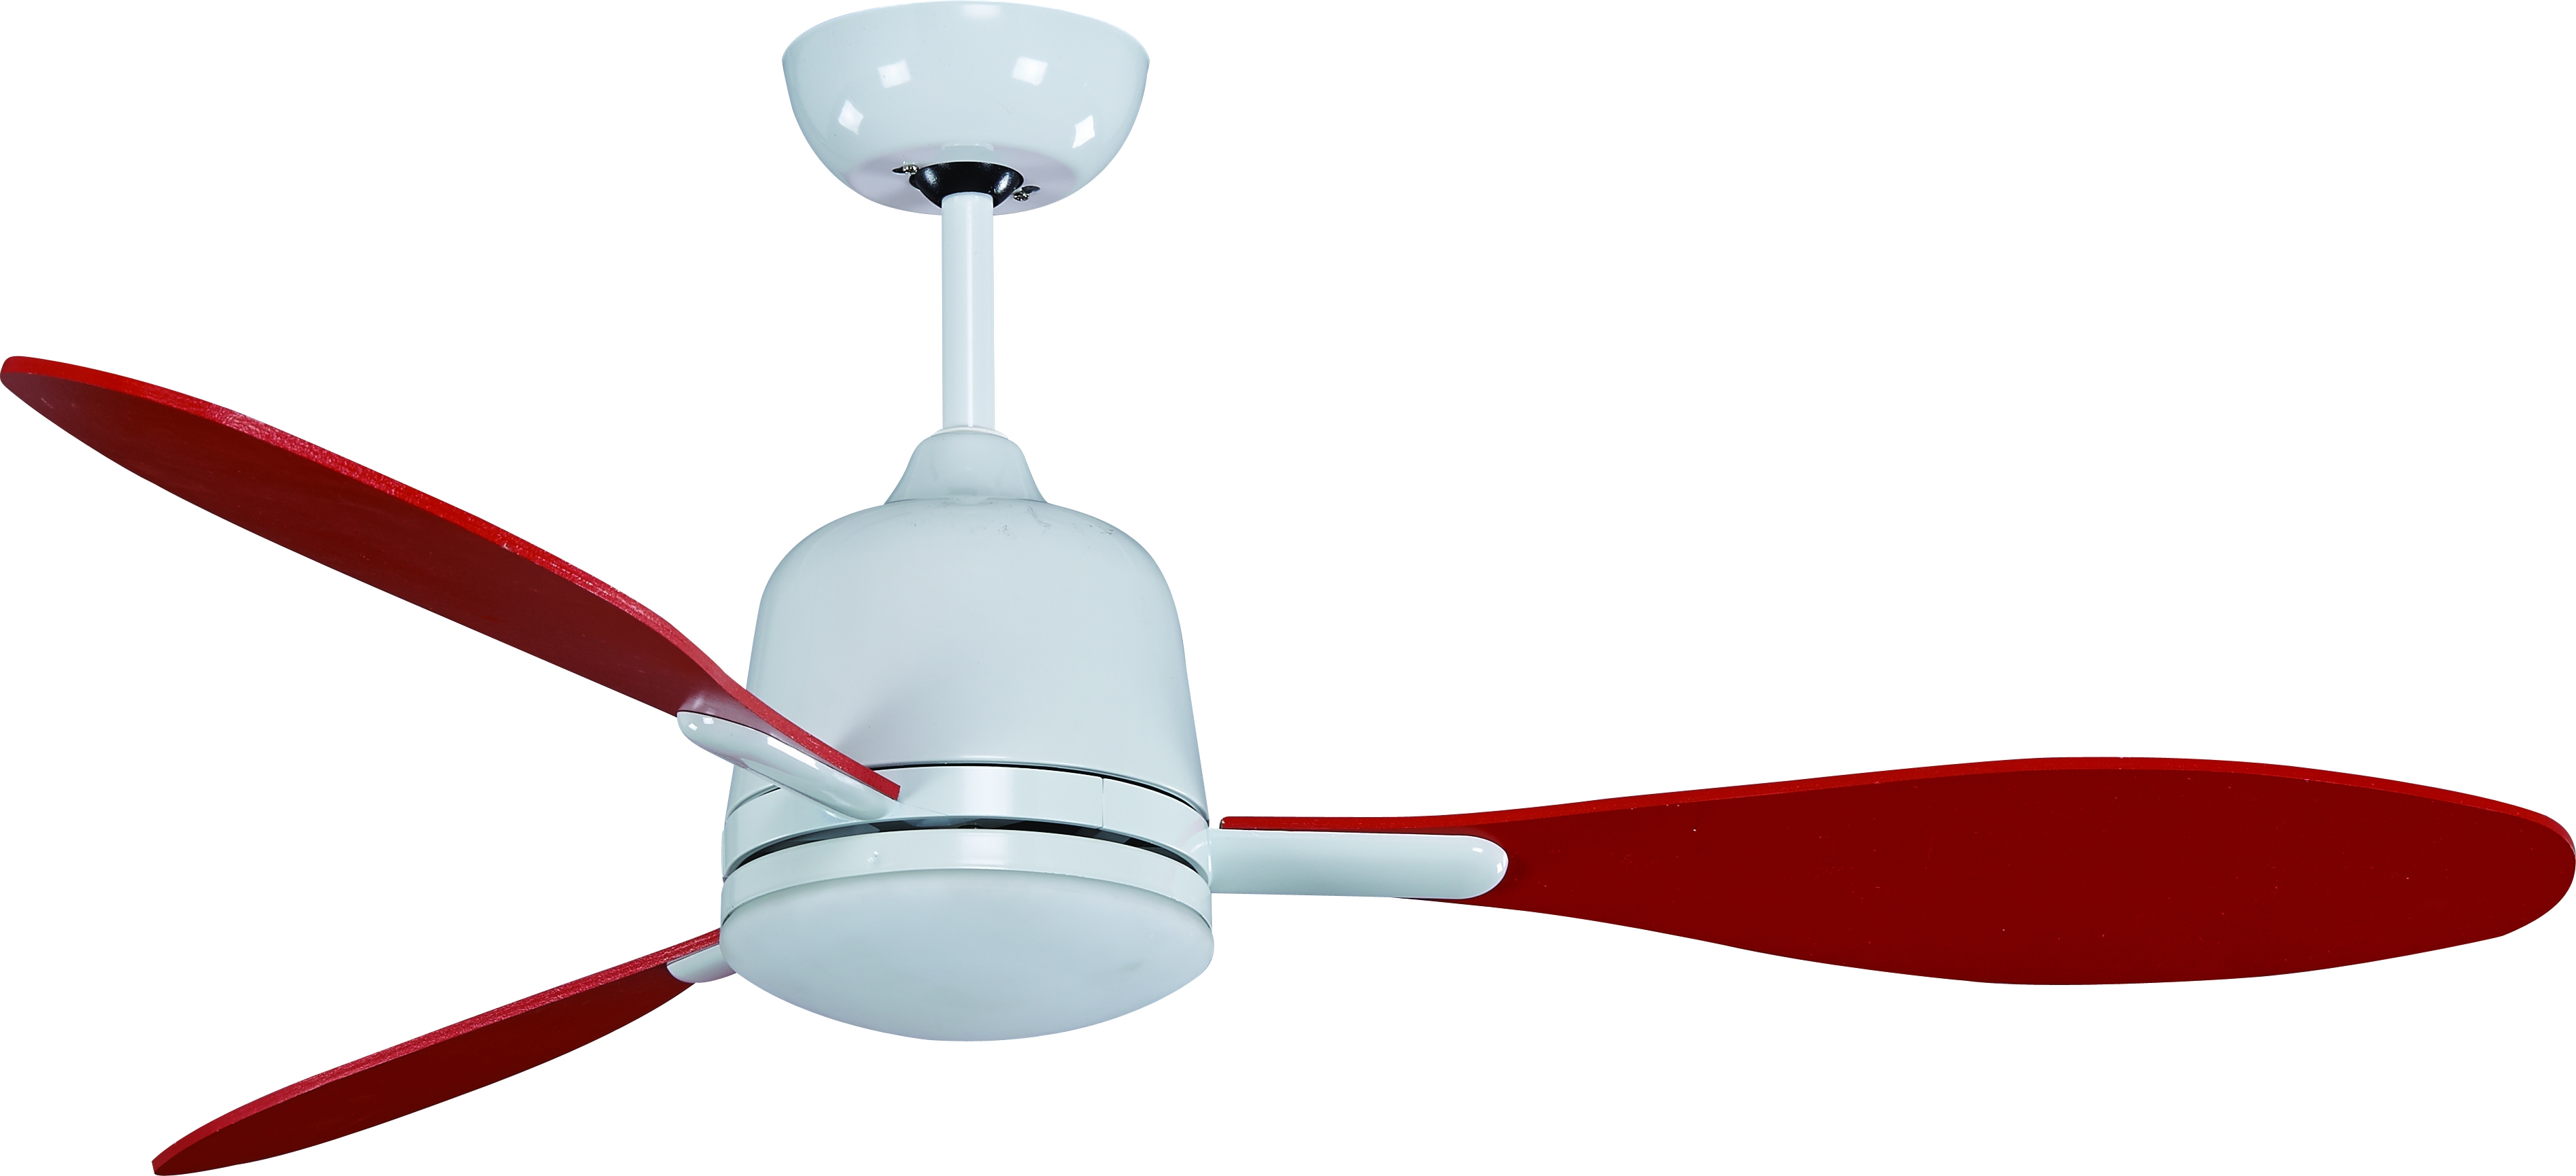 15021A【Light Fan】Chiba Type  BLDC  Brushless DC / Dazzling Red+White